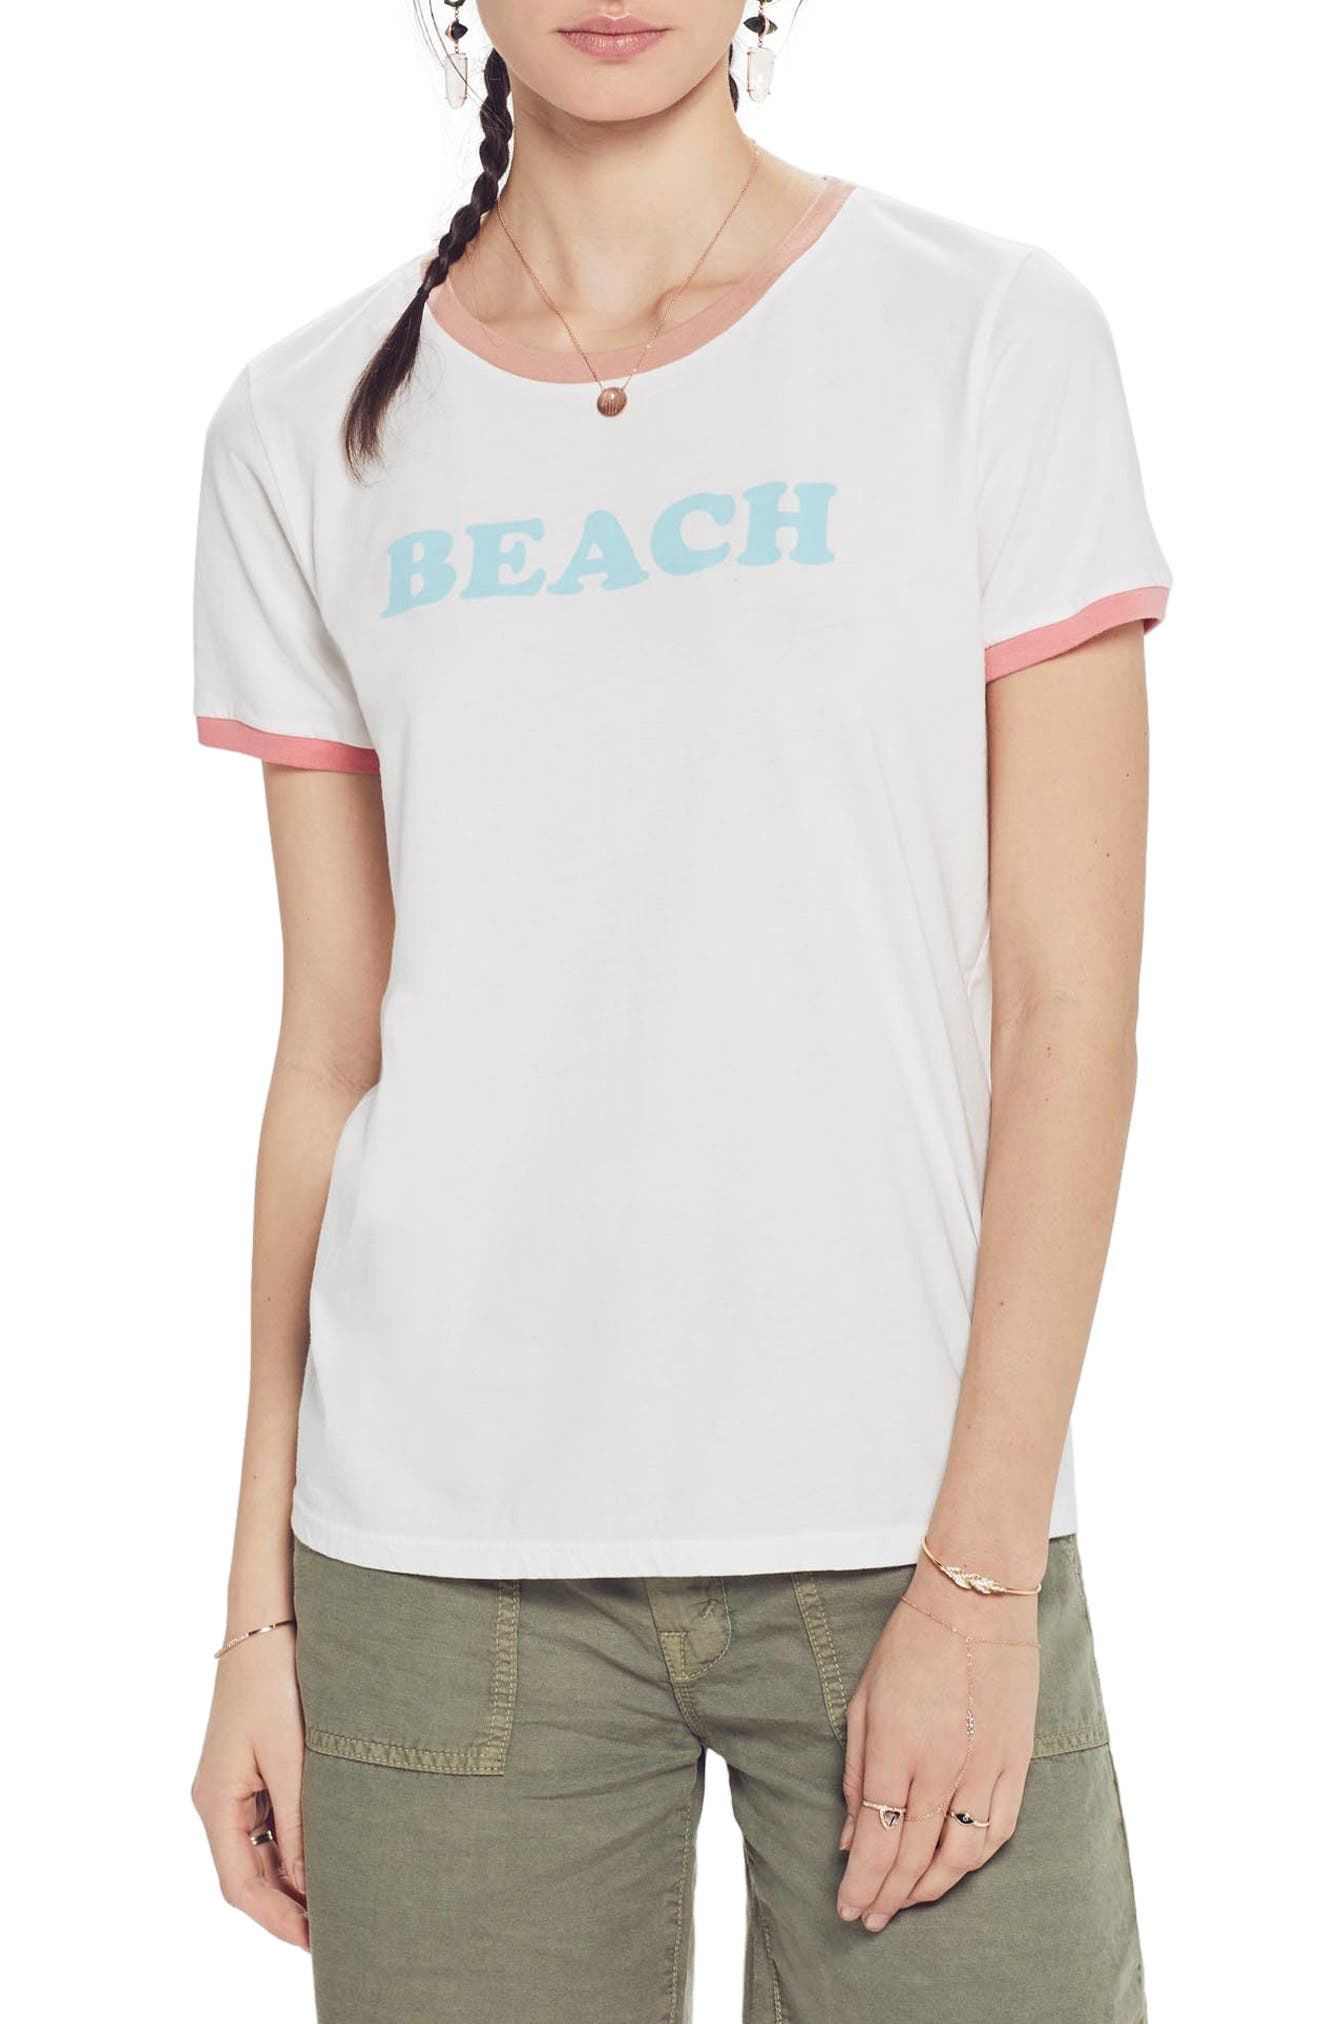 MOTHER Itty Bitty Goodie Goodie Ringer Tee, Main, color, BEACH